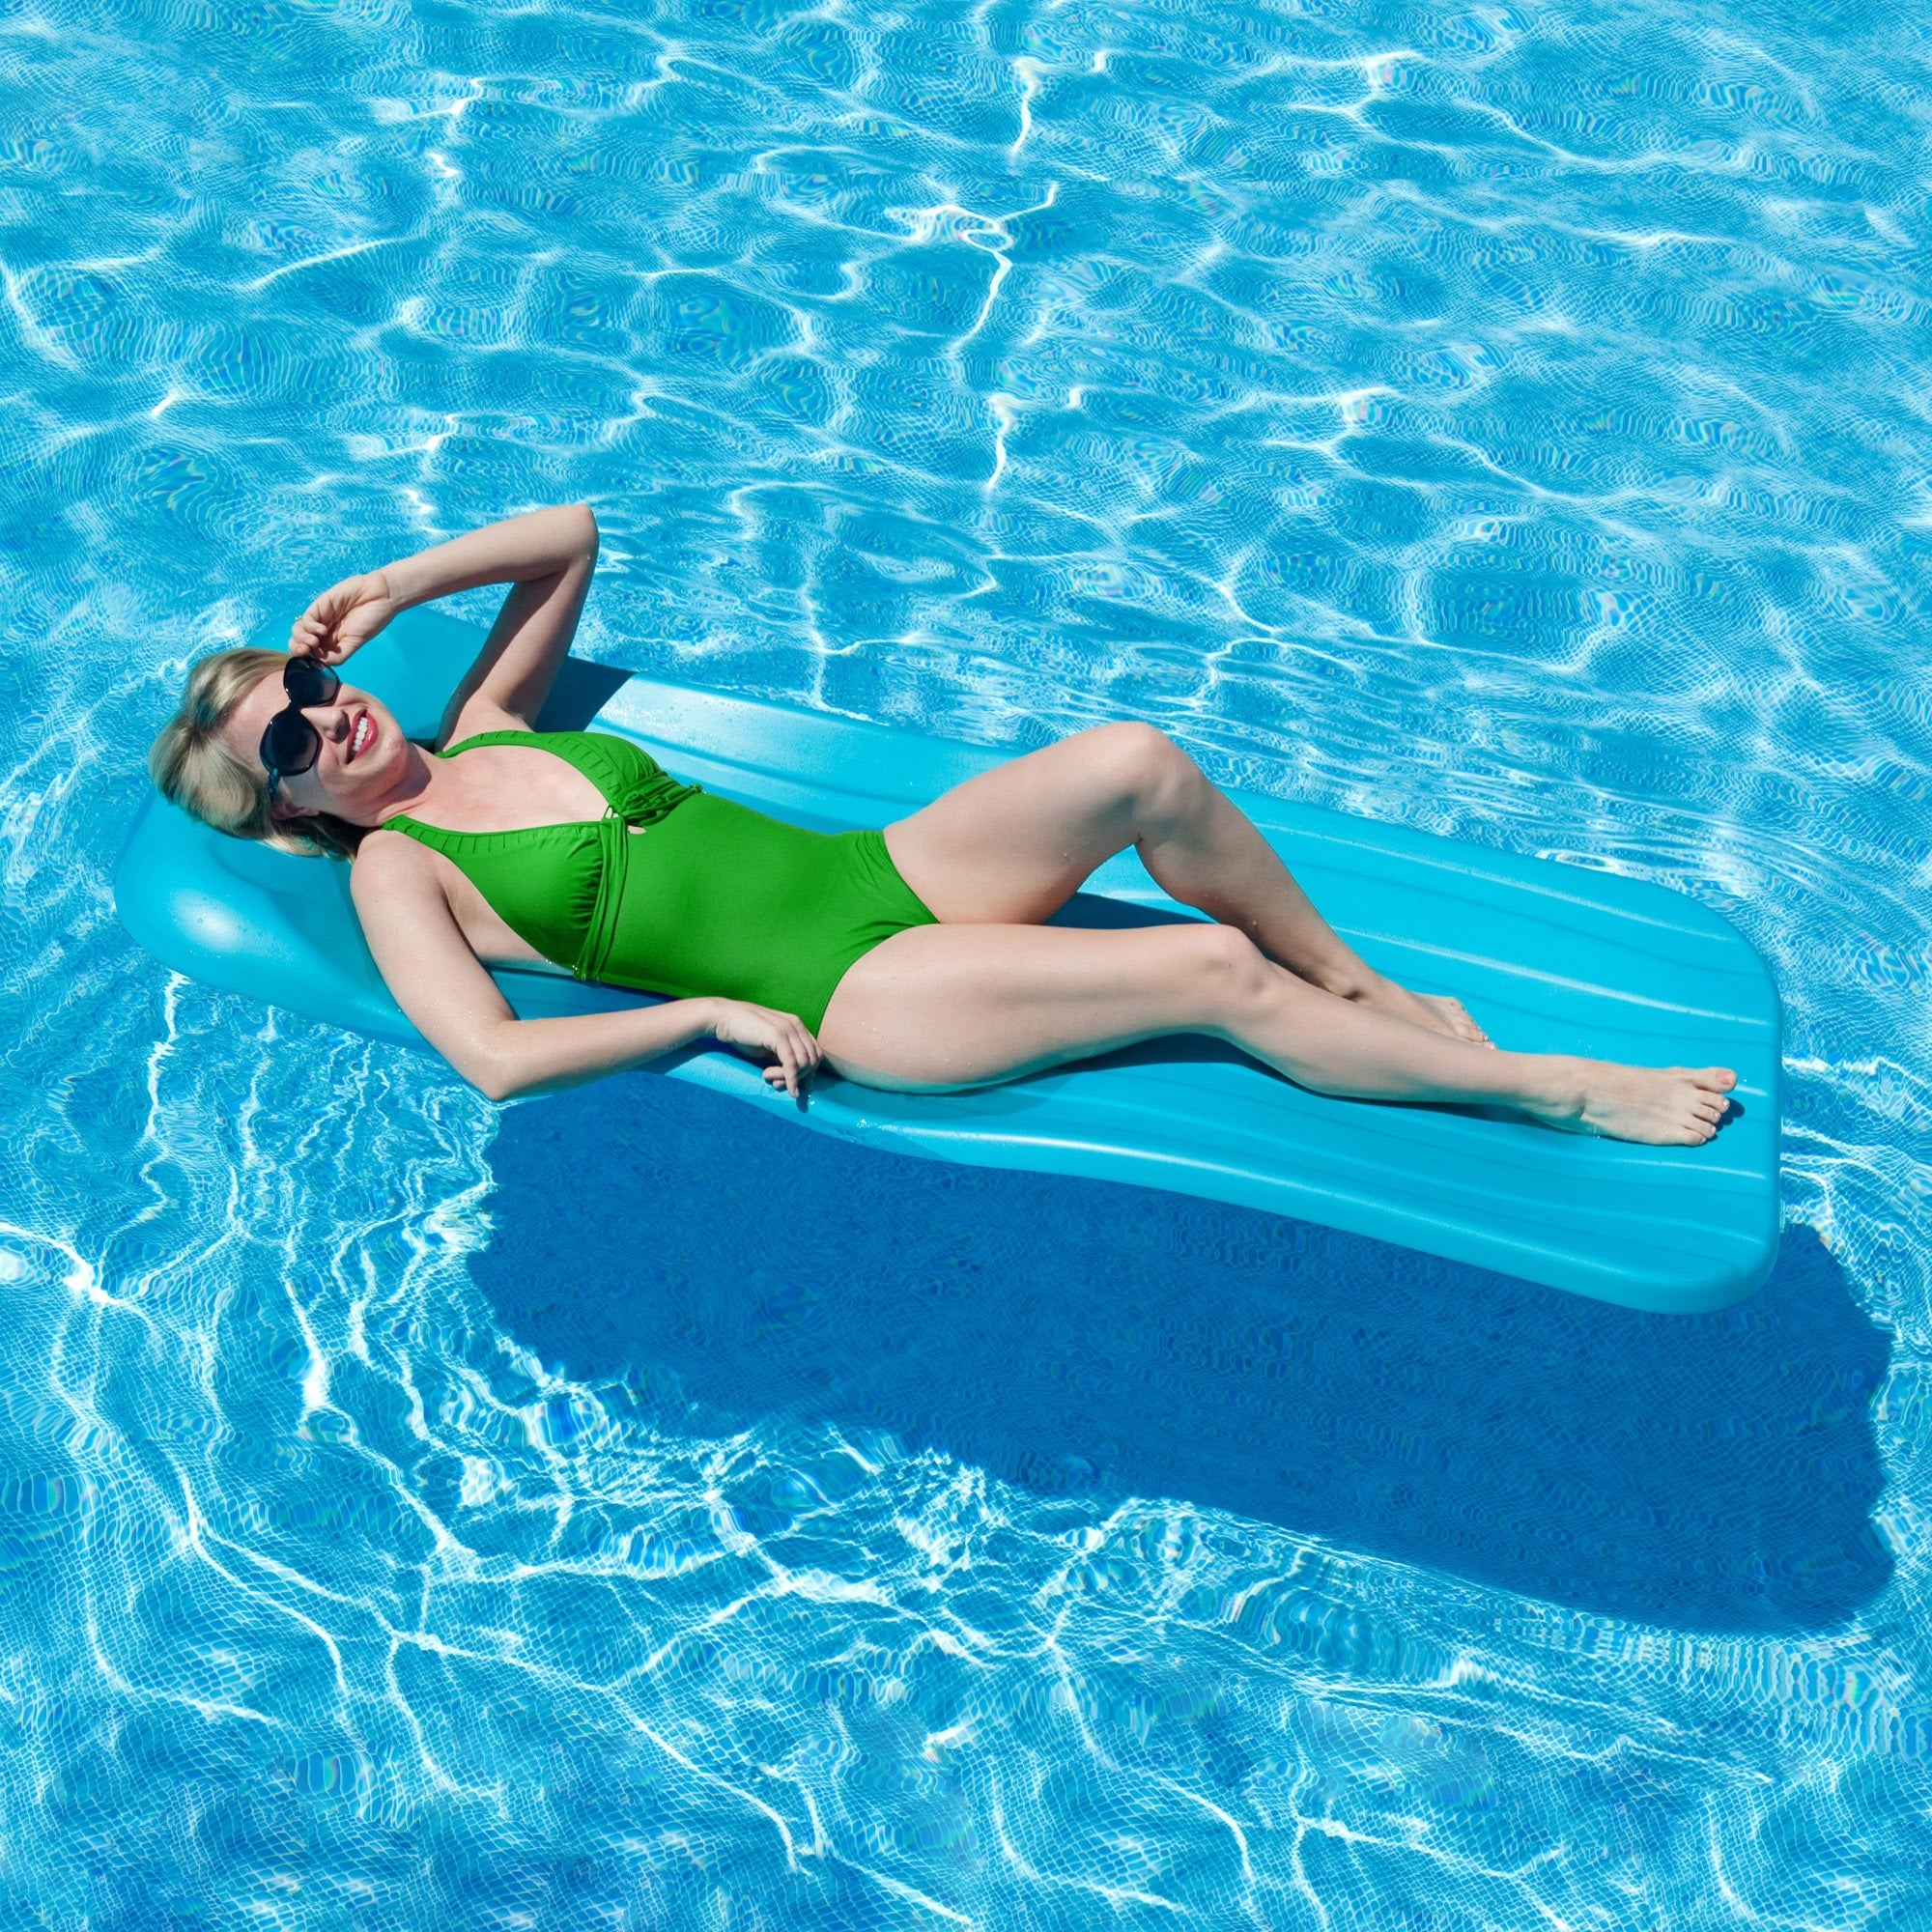 Aqua Cell Deluxe Cool 72-Inch x 1.75-Inch Pool Float (Blue)